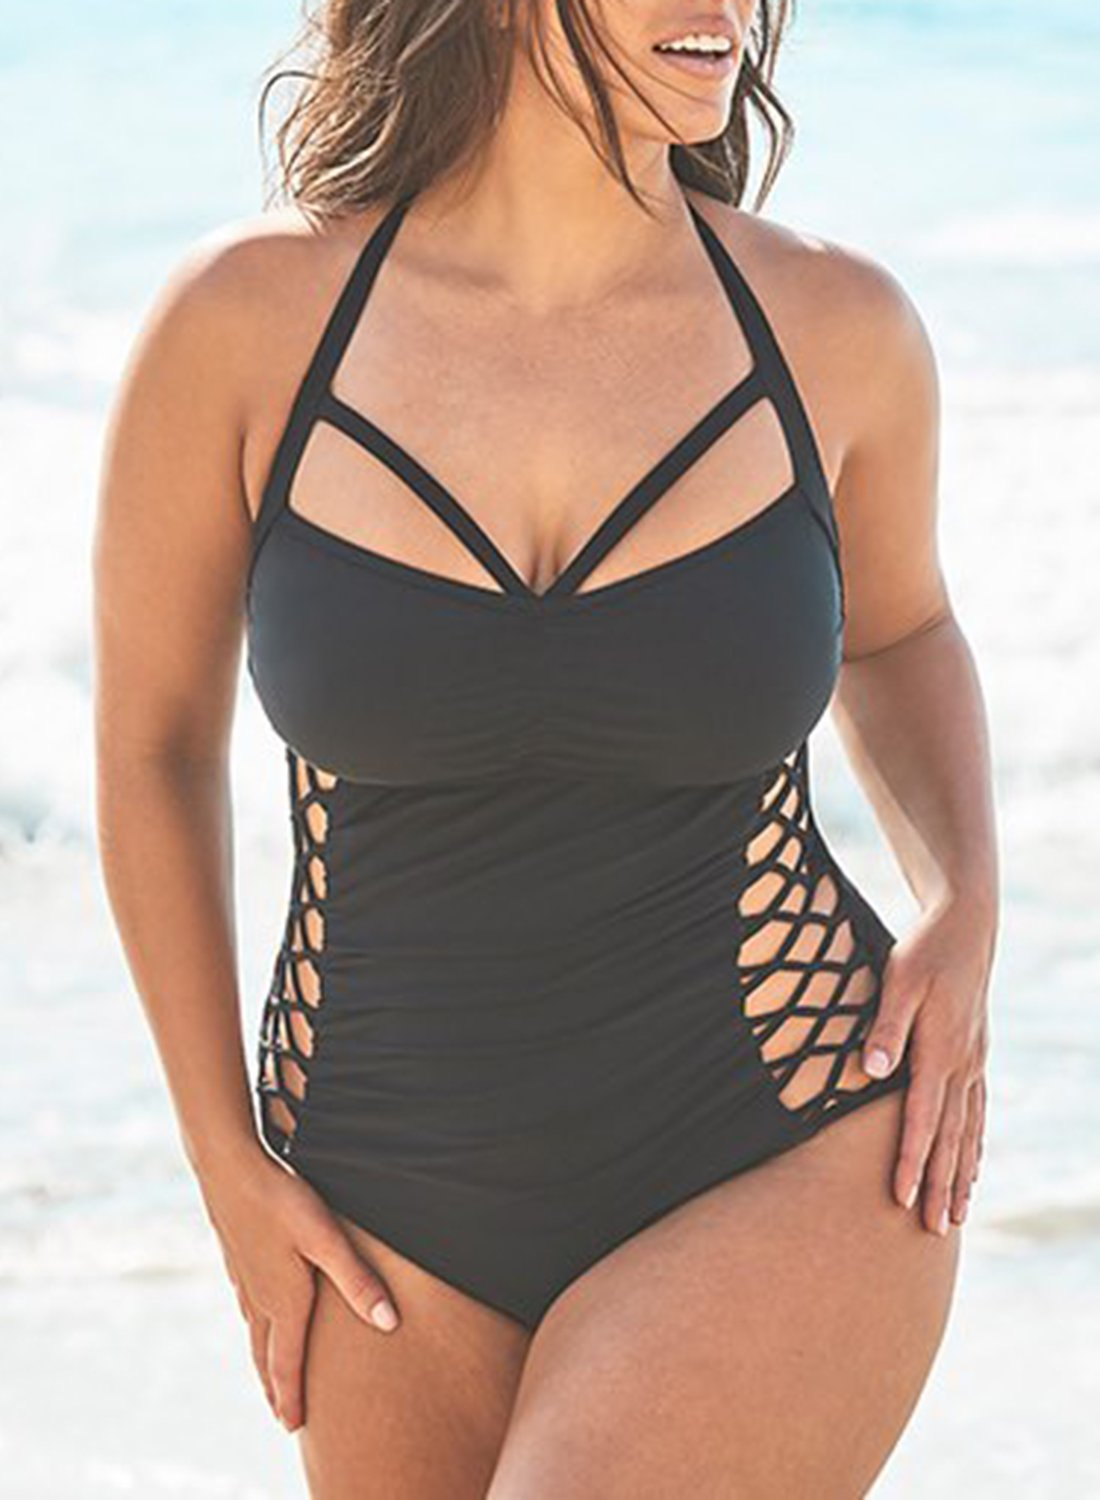 BOSS CUT OUT UNDERWIRE ONE PIECE SWIMSUIT choichic.com